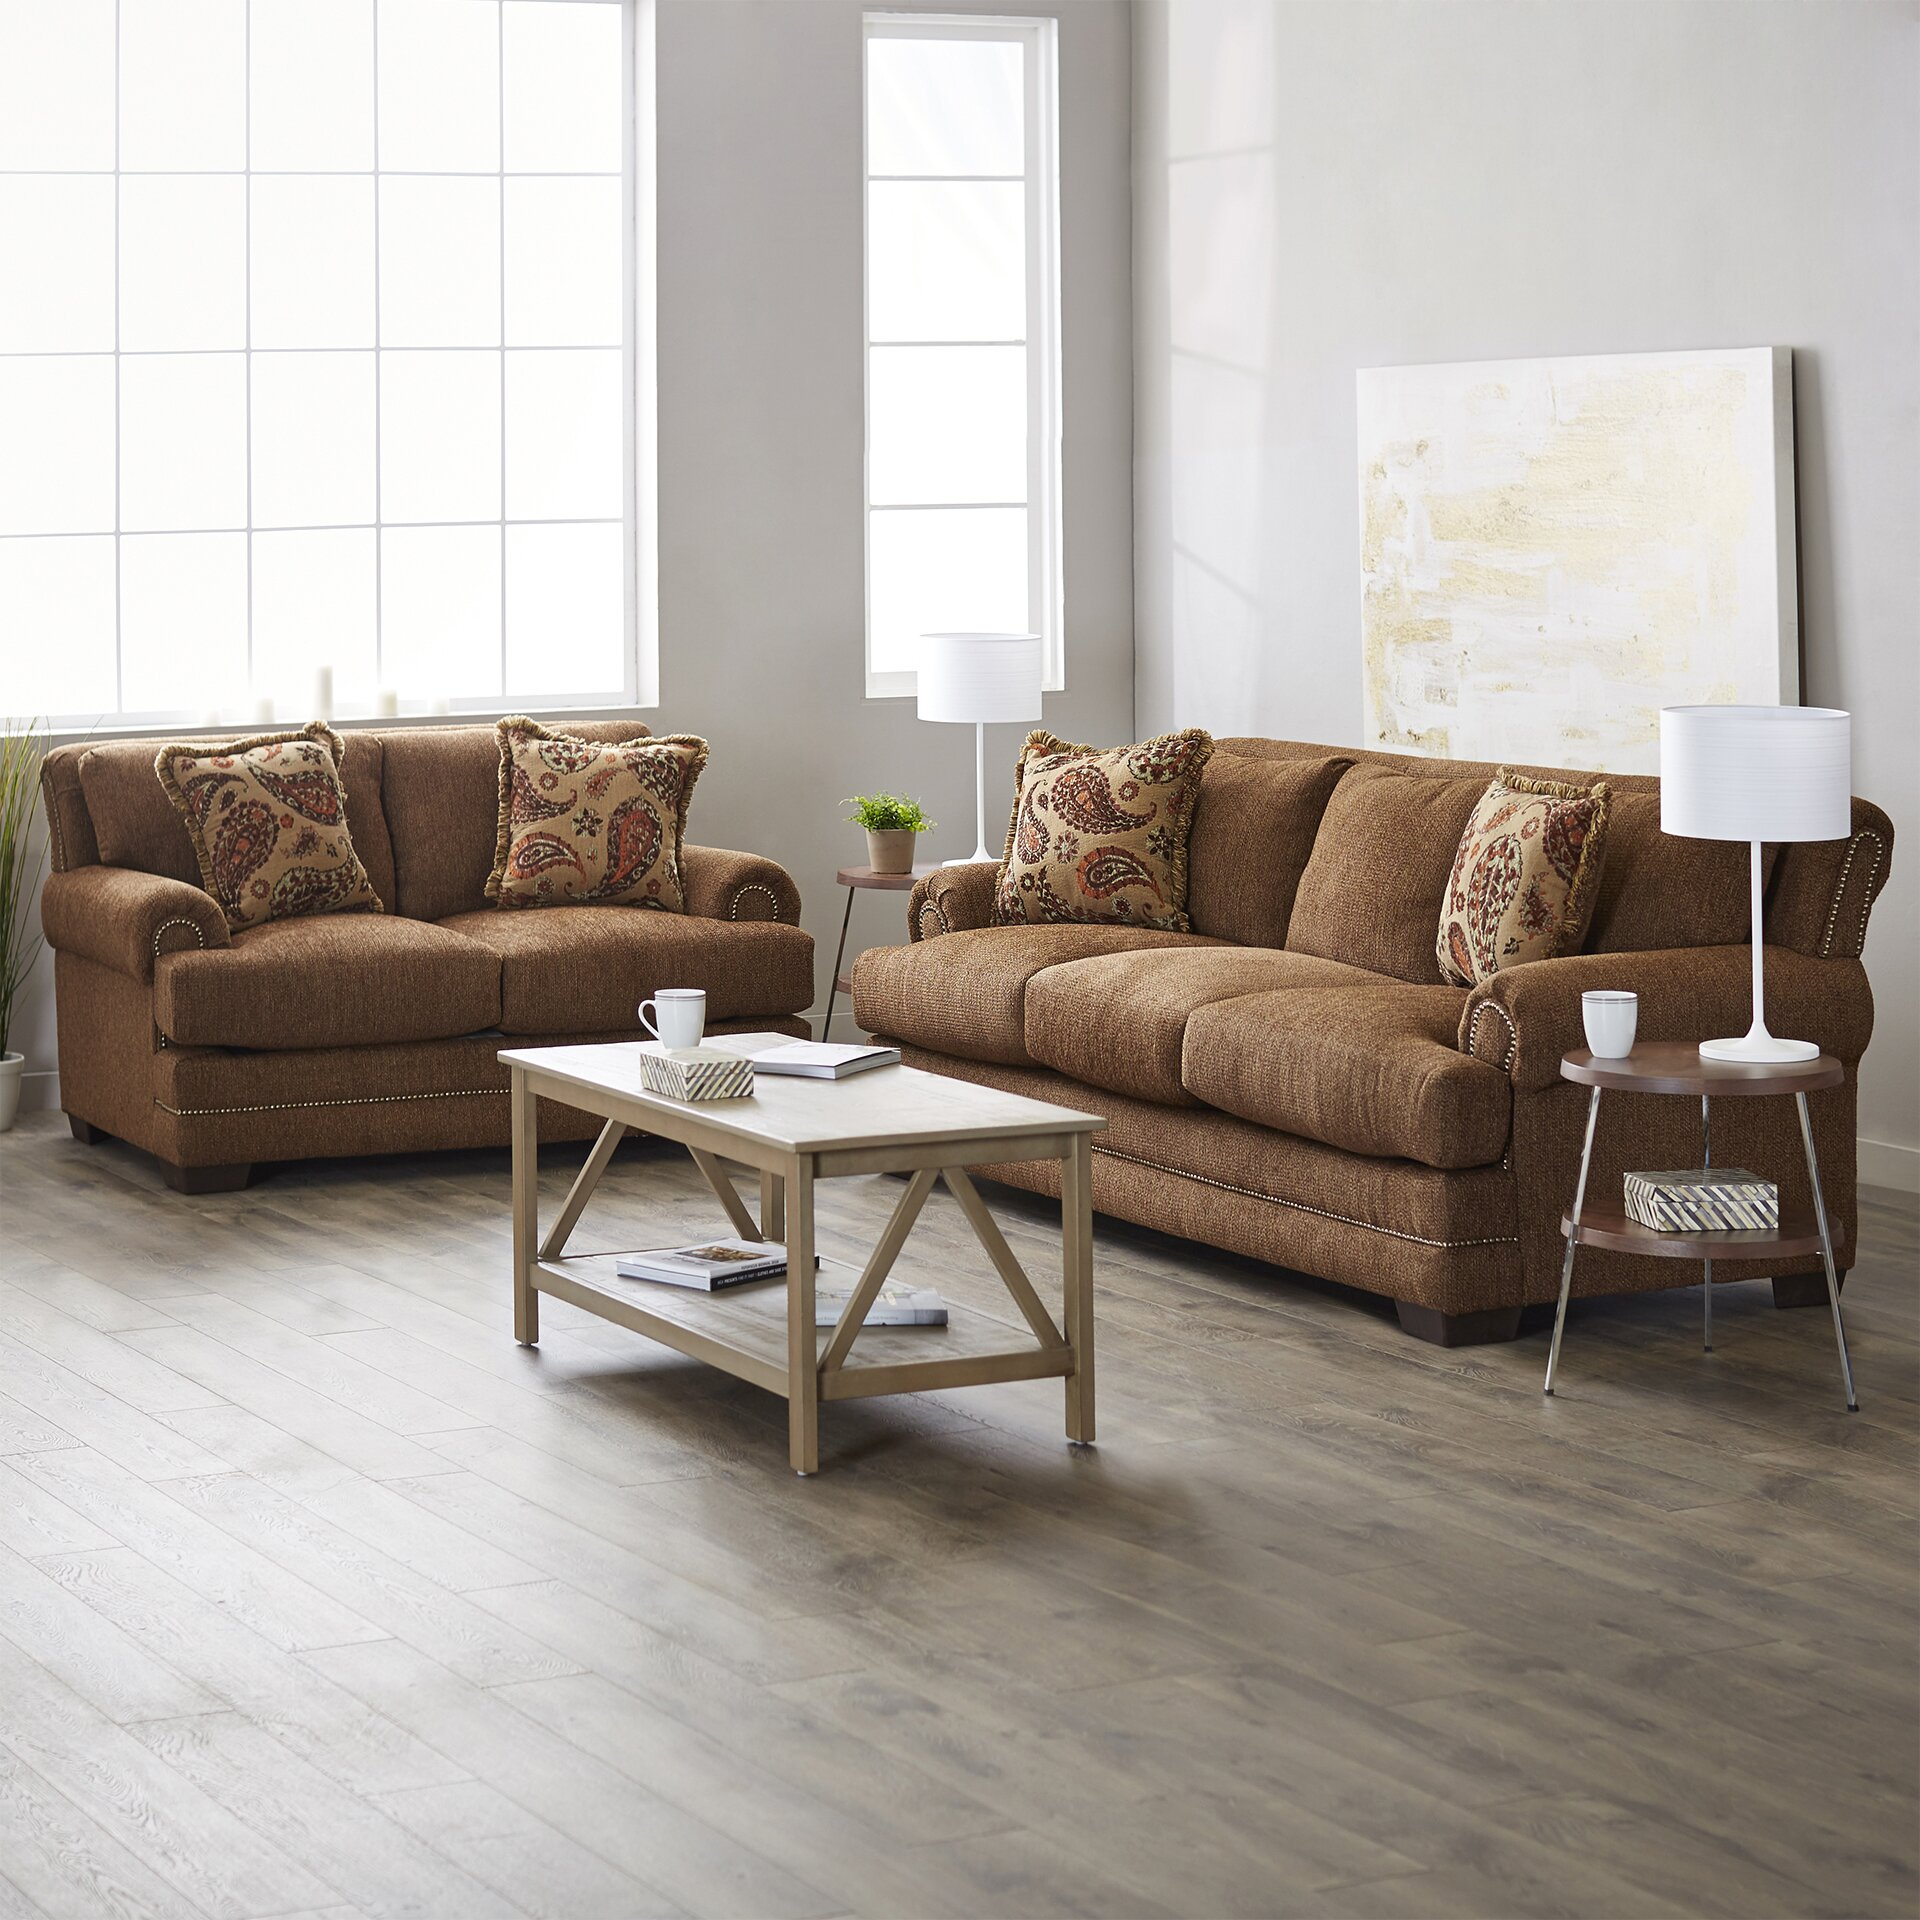 ... Three Posts Serta Upholstery Allen Living Room Collection ... Part 62